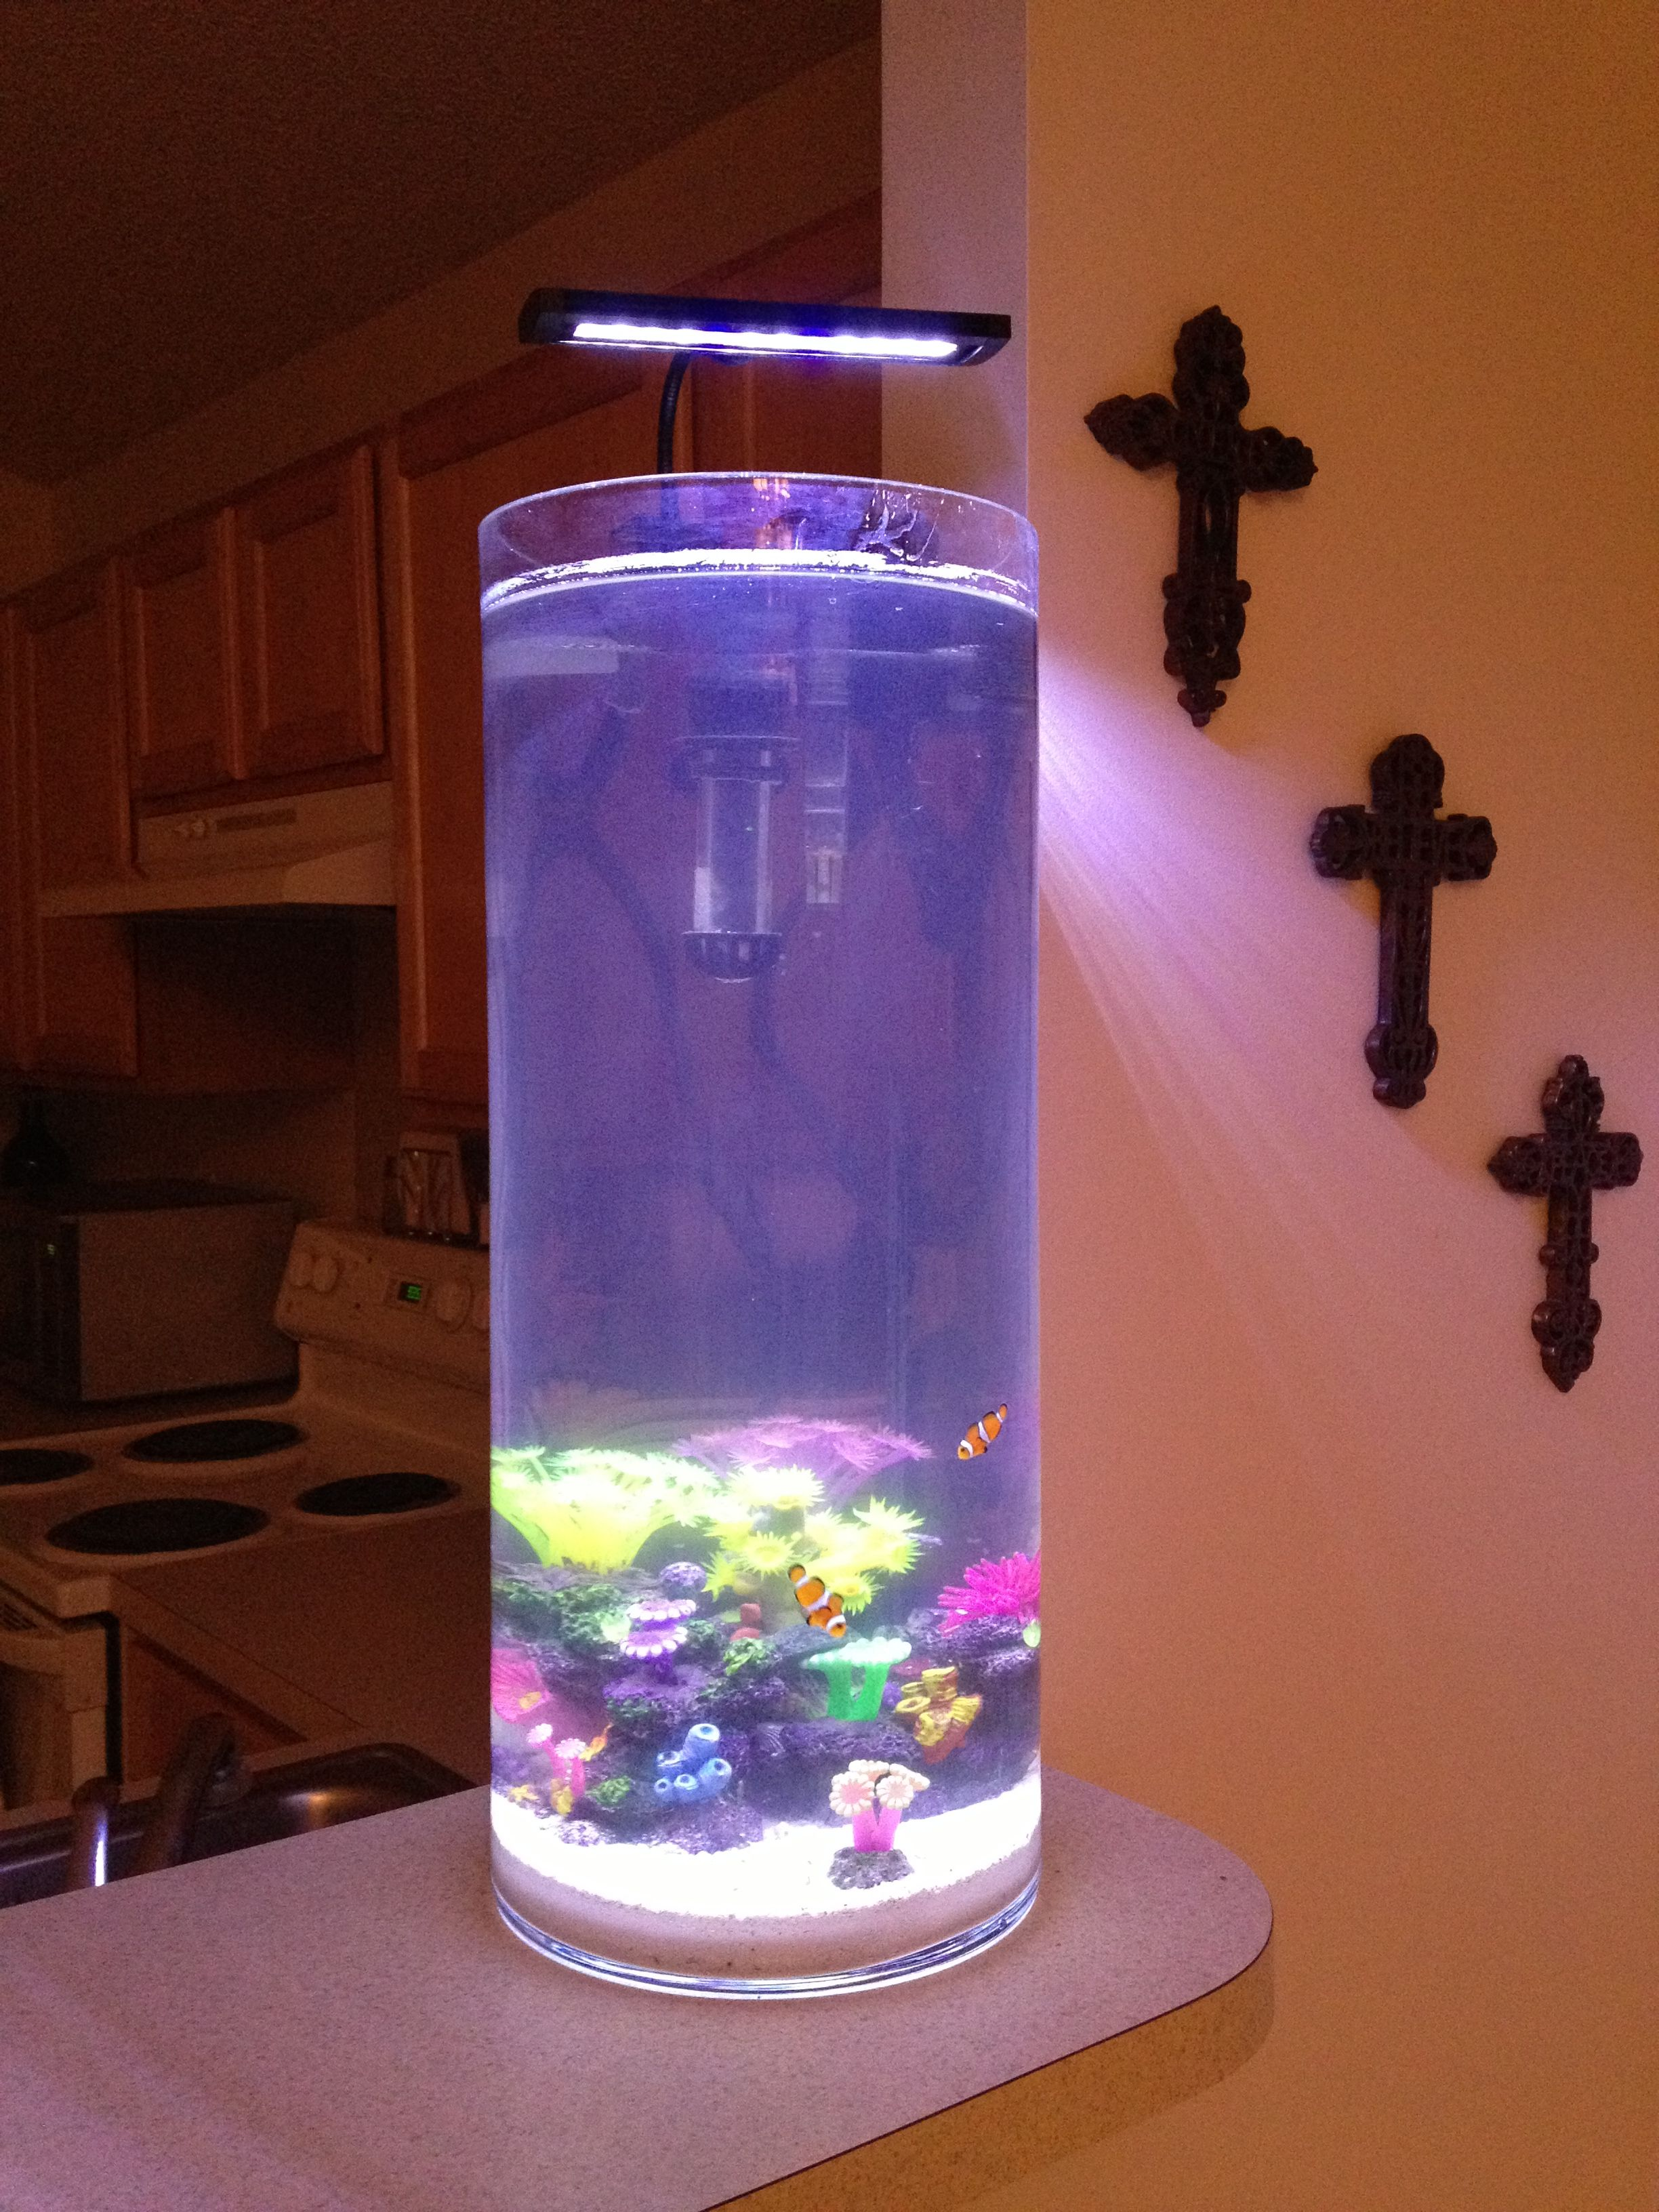 Salt Water Tank! The Tank Is A Vase From Marshallu0027s, With Bright, Fake